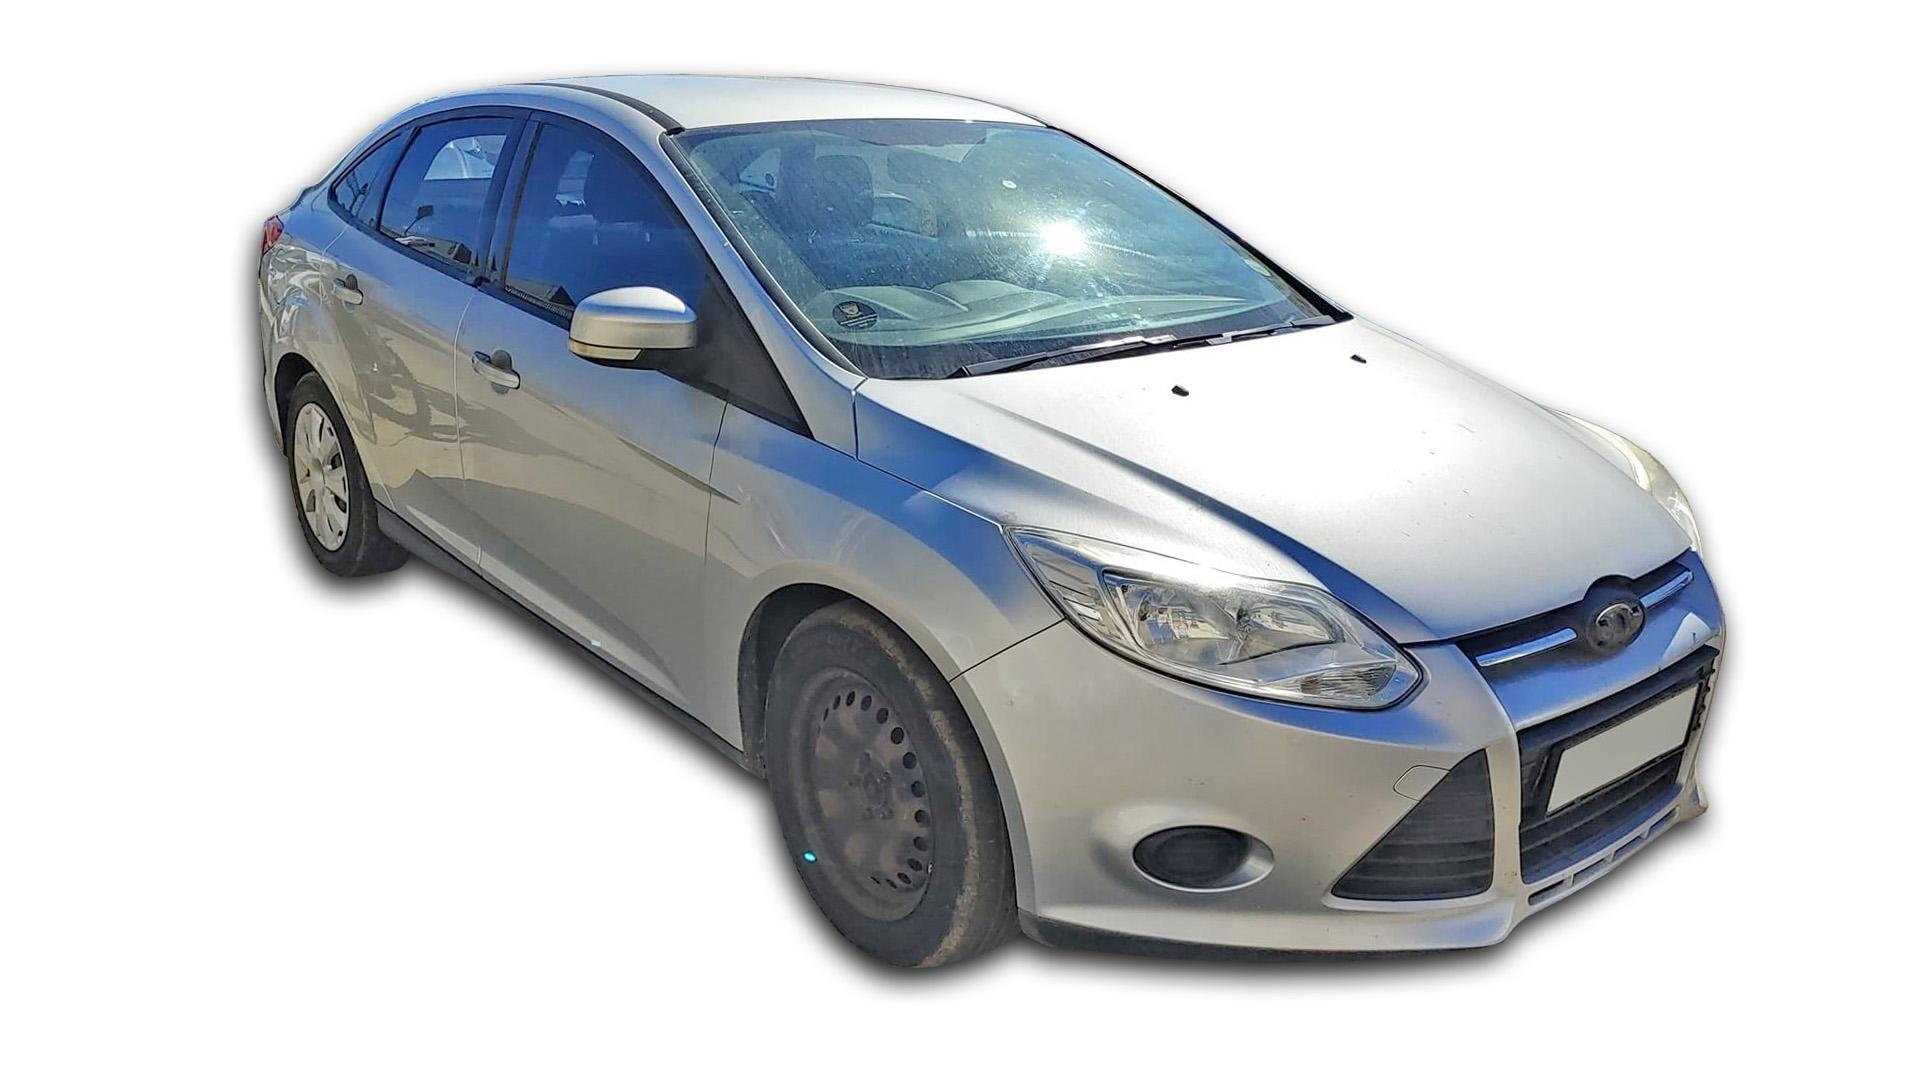 Ford Focus 1.6 TI VCT Trend